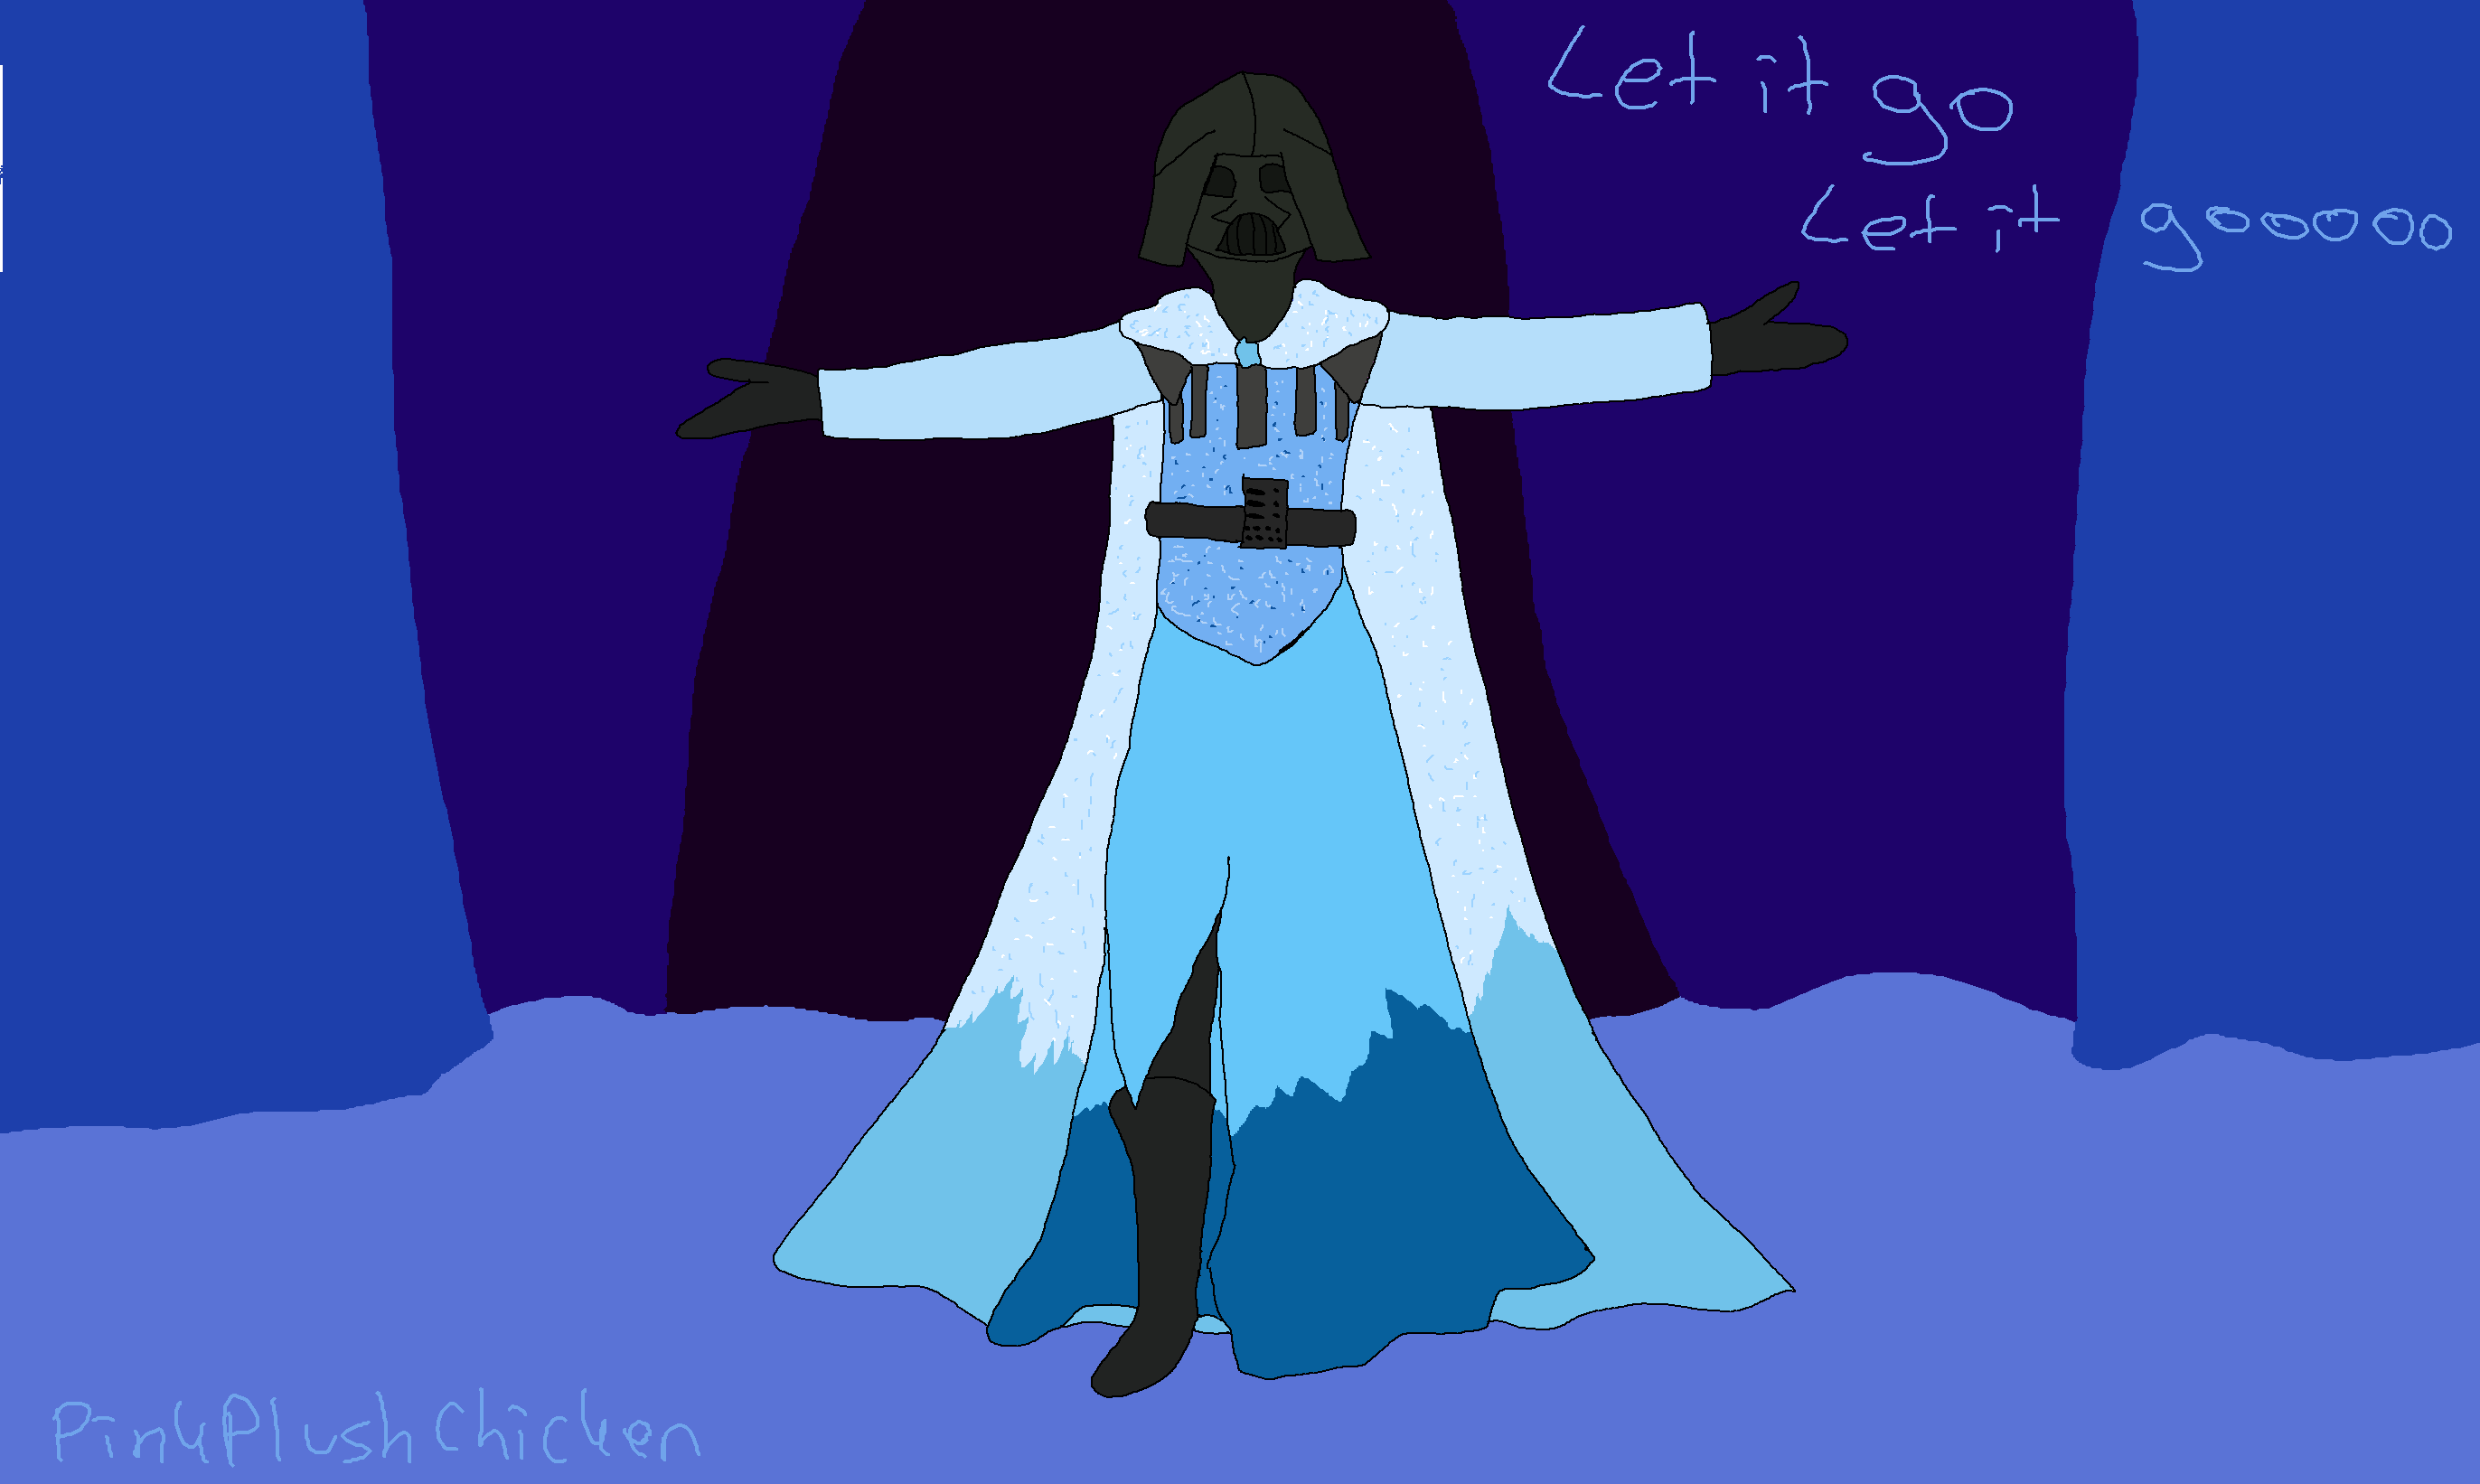 darth_vader_singing_let_it_go_by_pinkplushchicken-d9hbijx.png